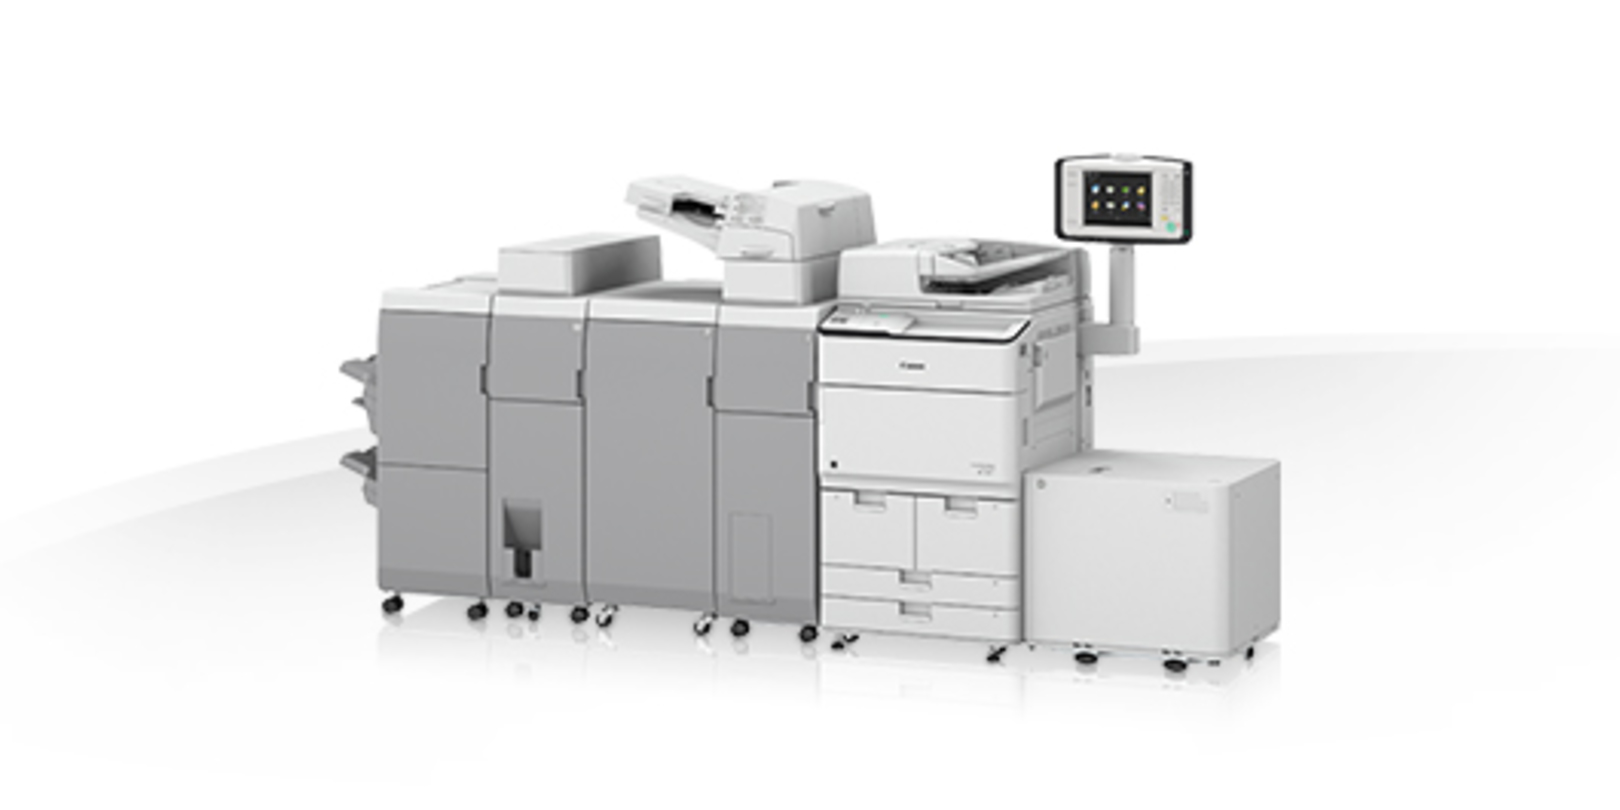 Canon imageRUNNER ADVANCE DX 8705 printer available ot lease or purchase.